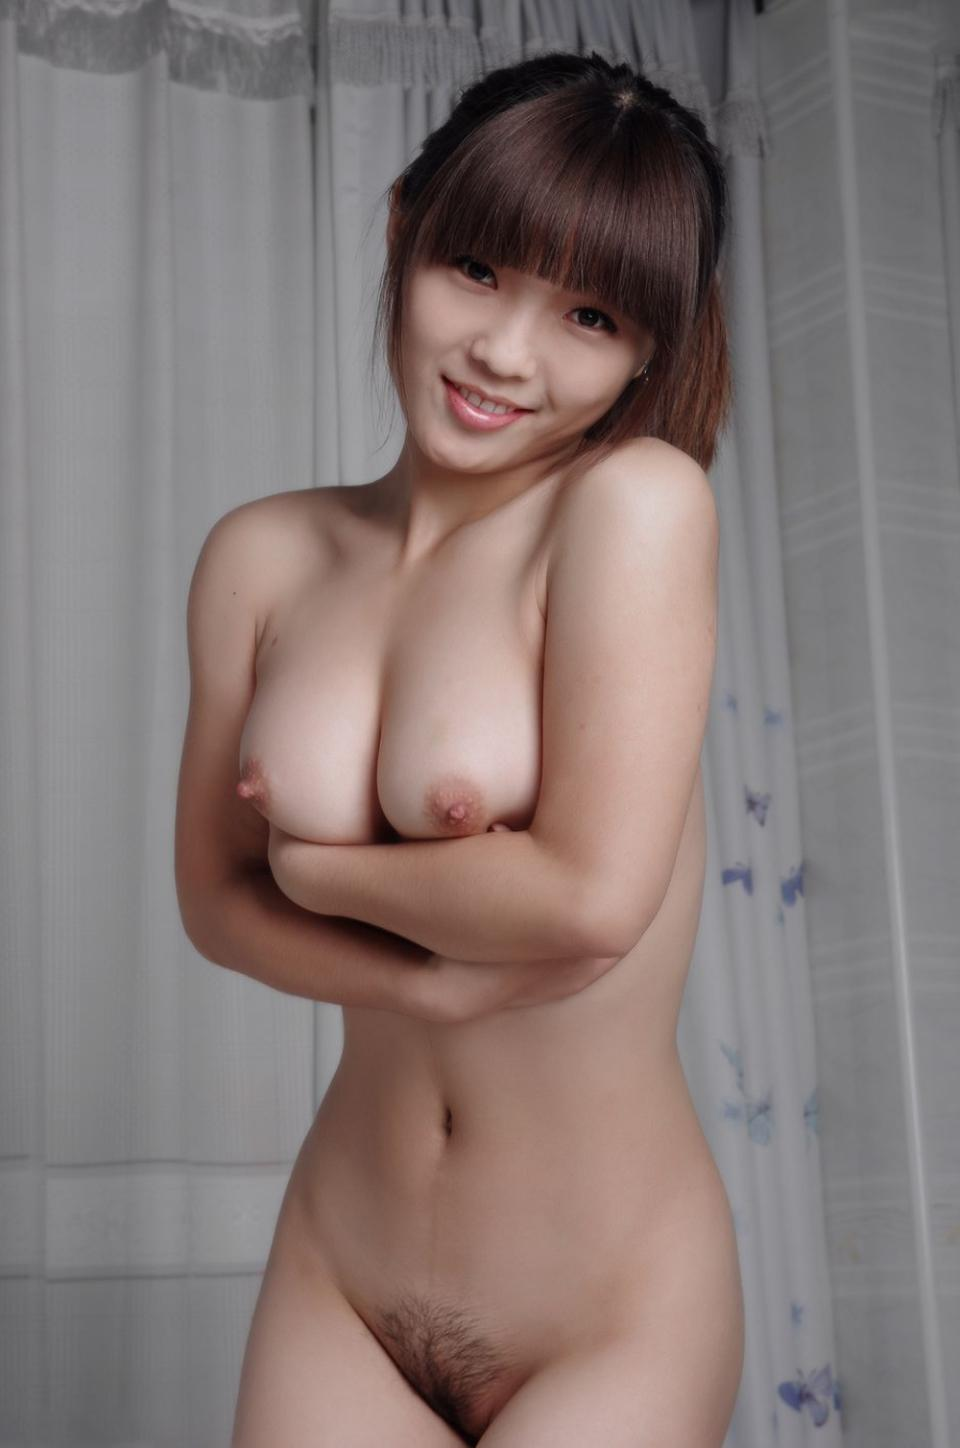 Asian Porn In The Victorian Era asian ass free naked picture site woman - porn archive